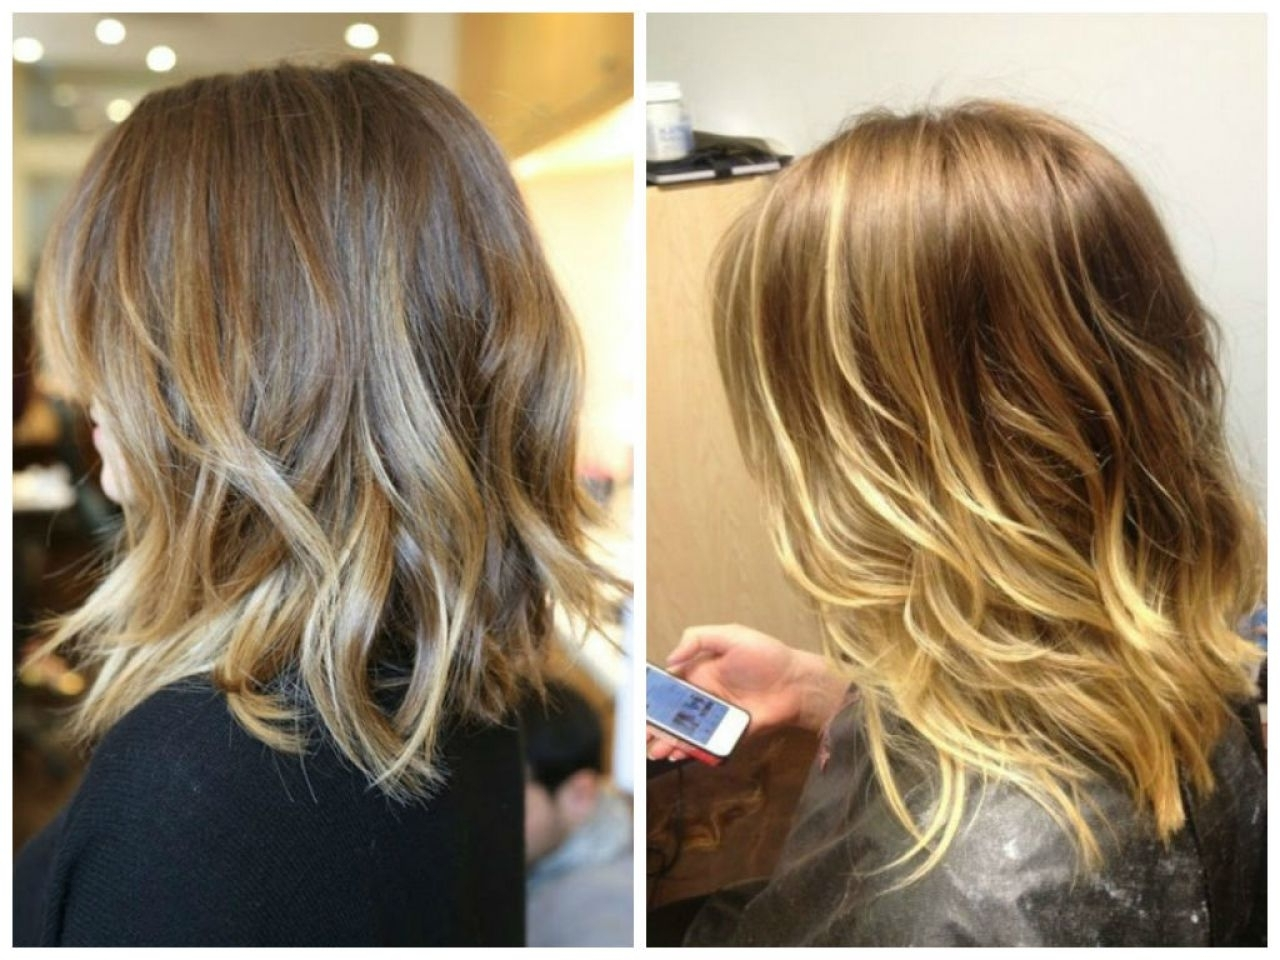 Hair Color : Dark Blonde Ombre Medium Hair Platinum Brown To Length Inside Current Blonde Ombre Waves Hairstyles (View 17 of 20)